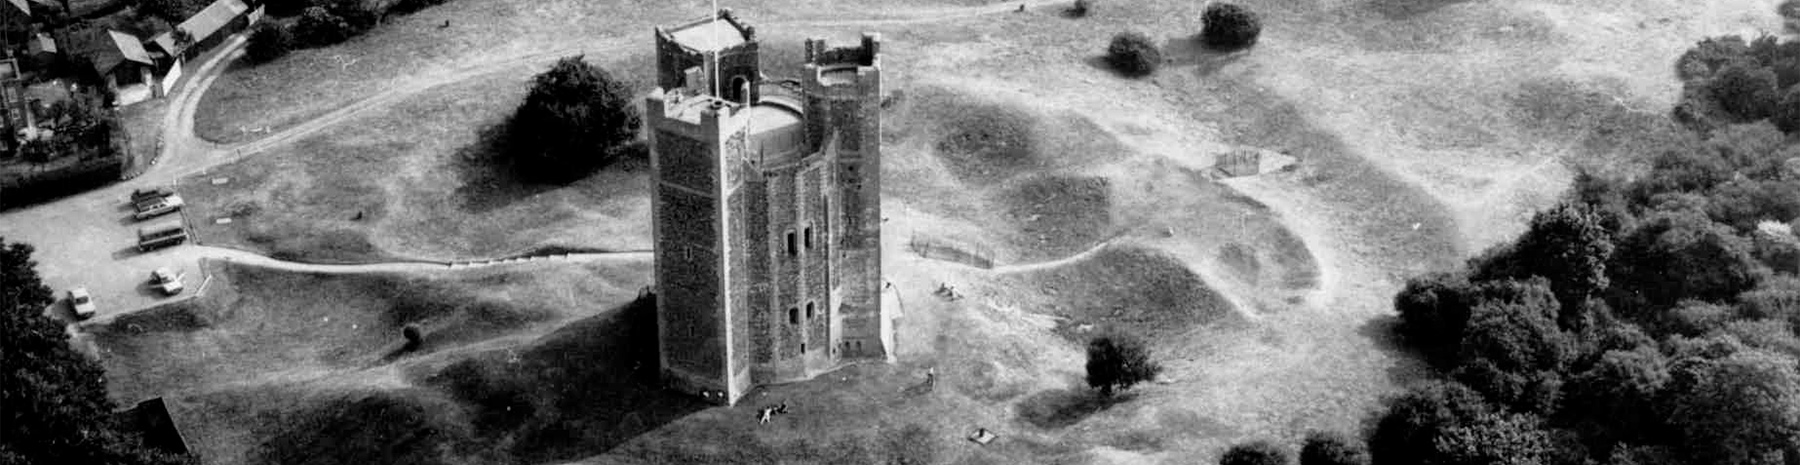 black and white photo of Orford Castle from above